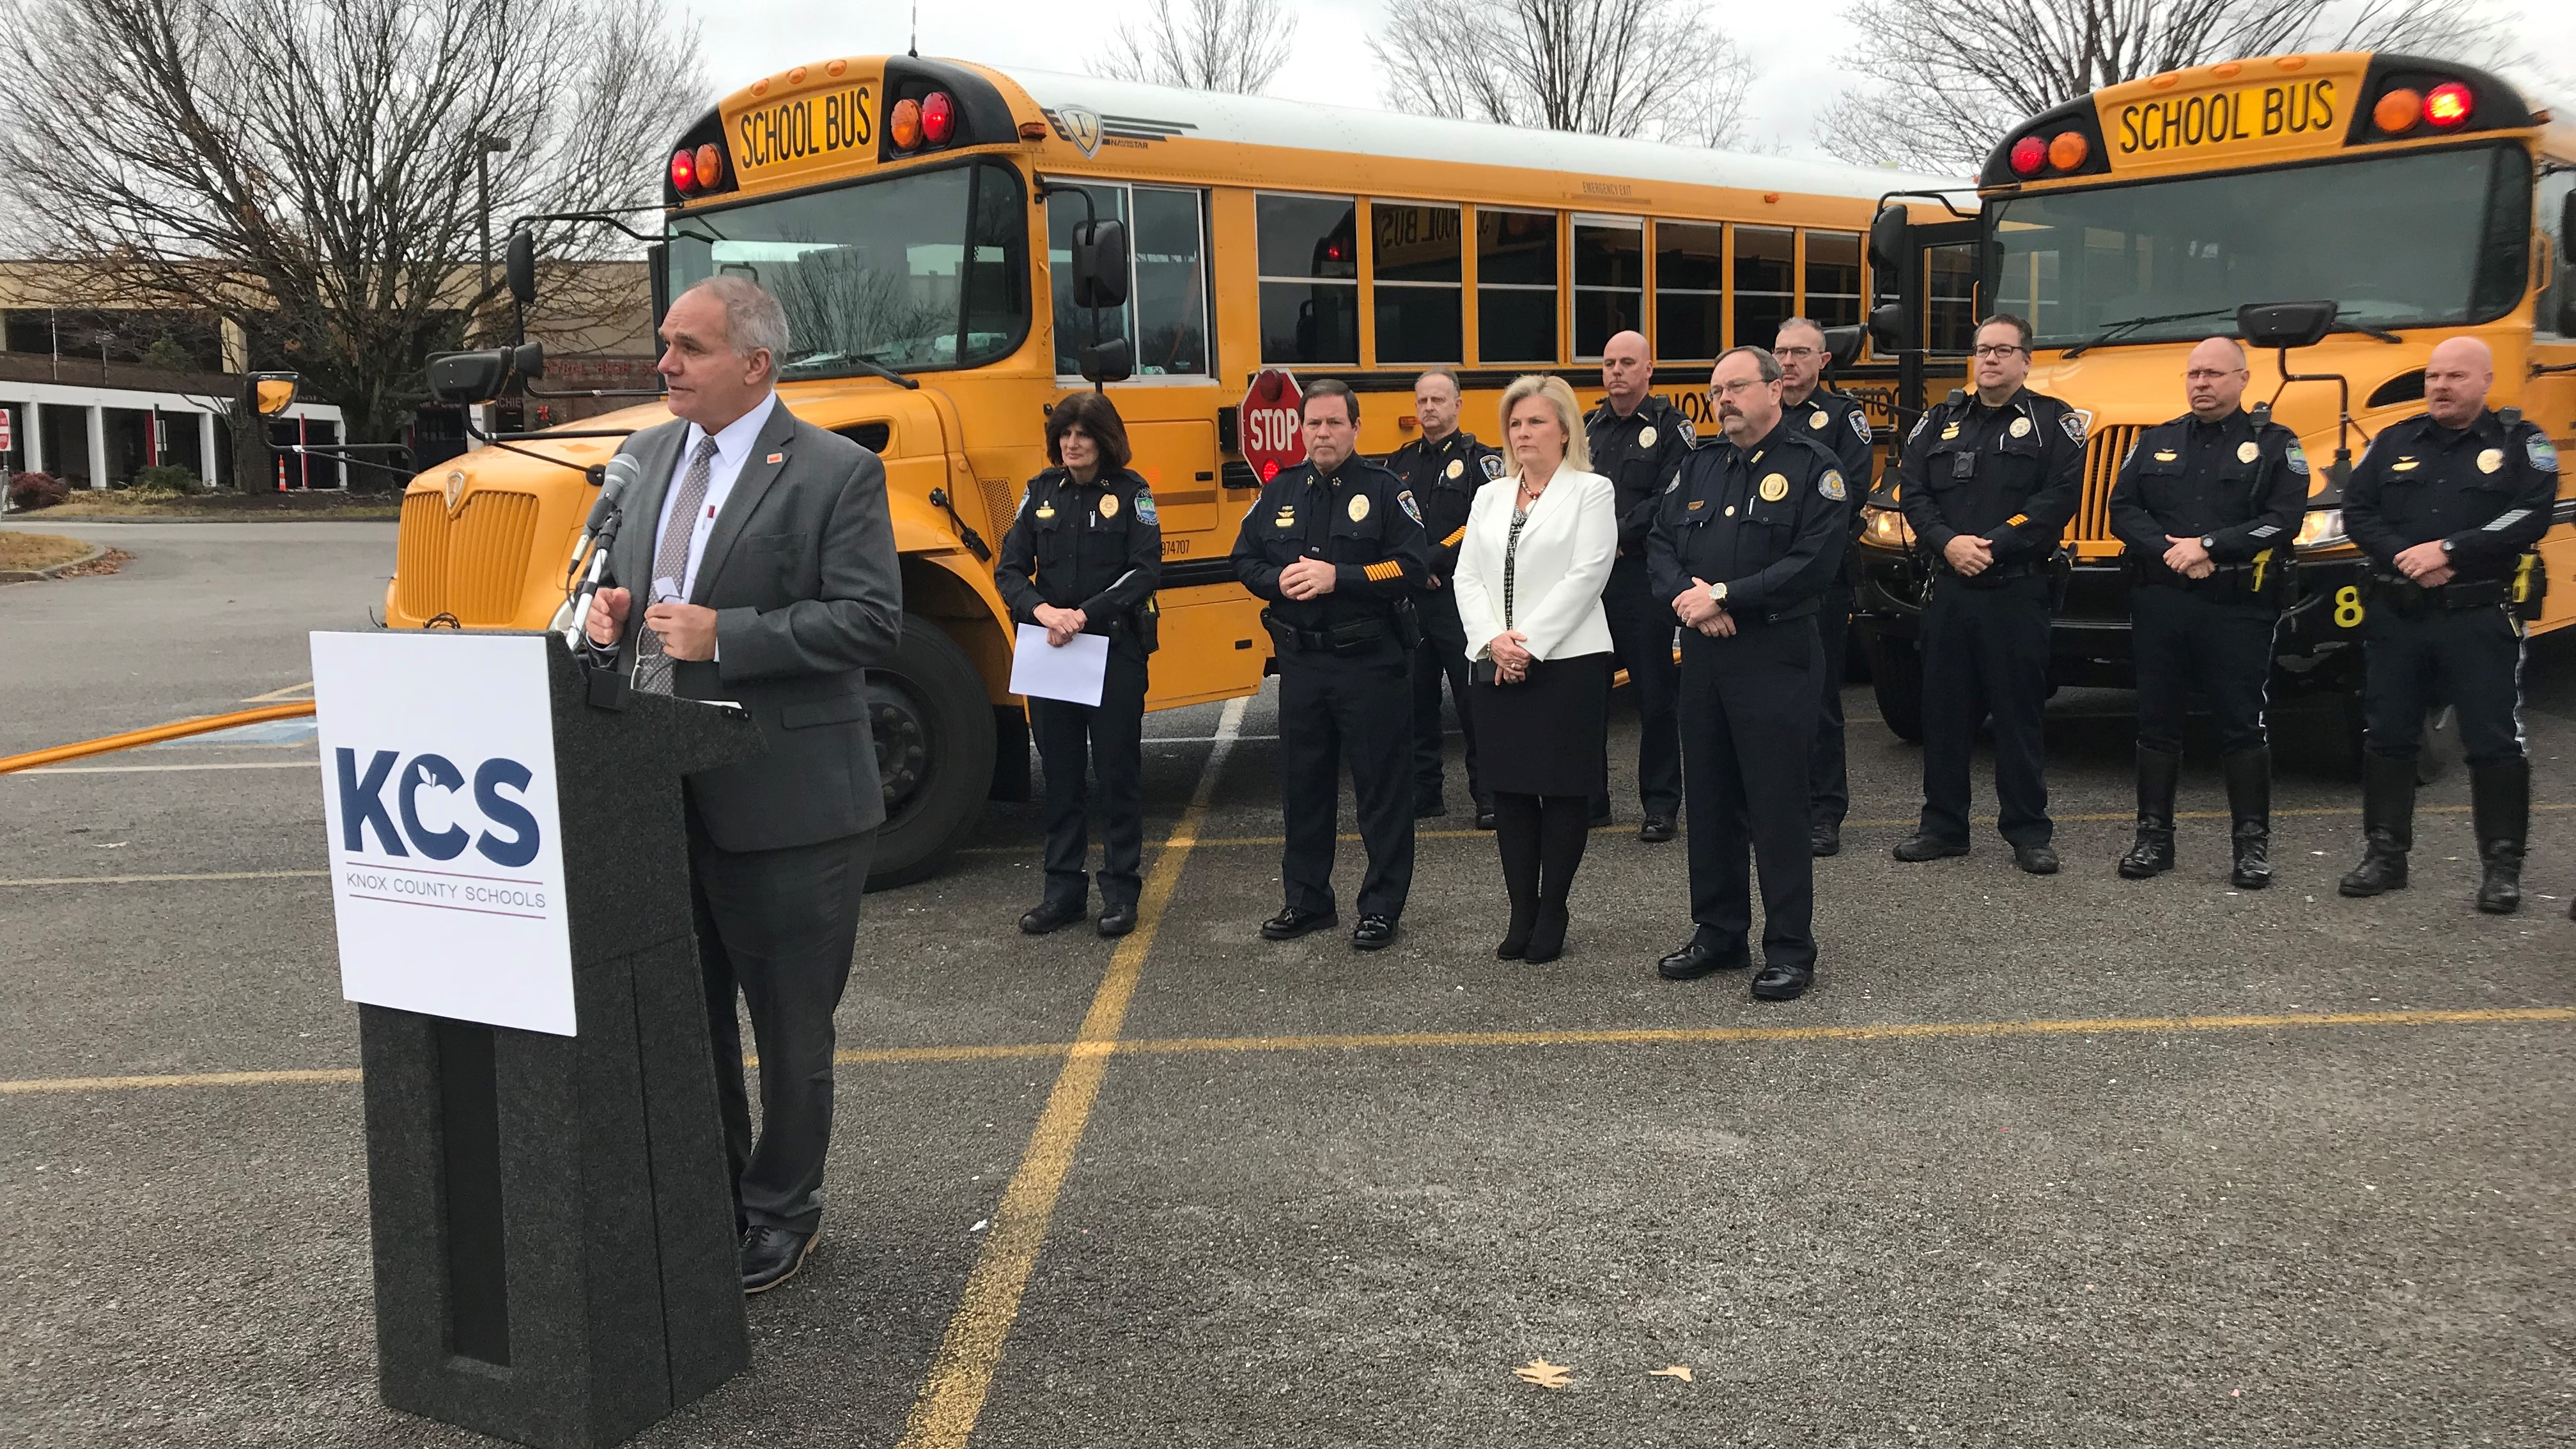 KCS Chief of Security Gus Paidousis speaks at a news conference about bus safety.